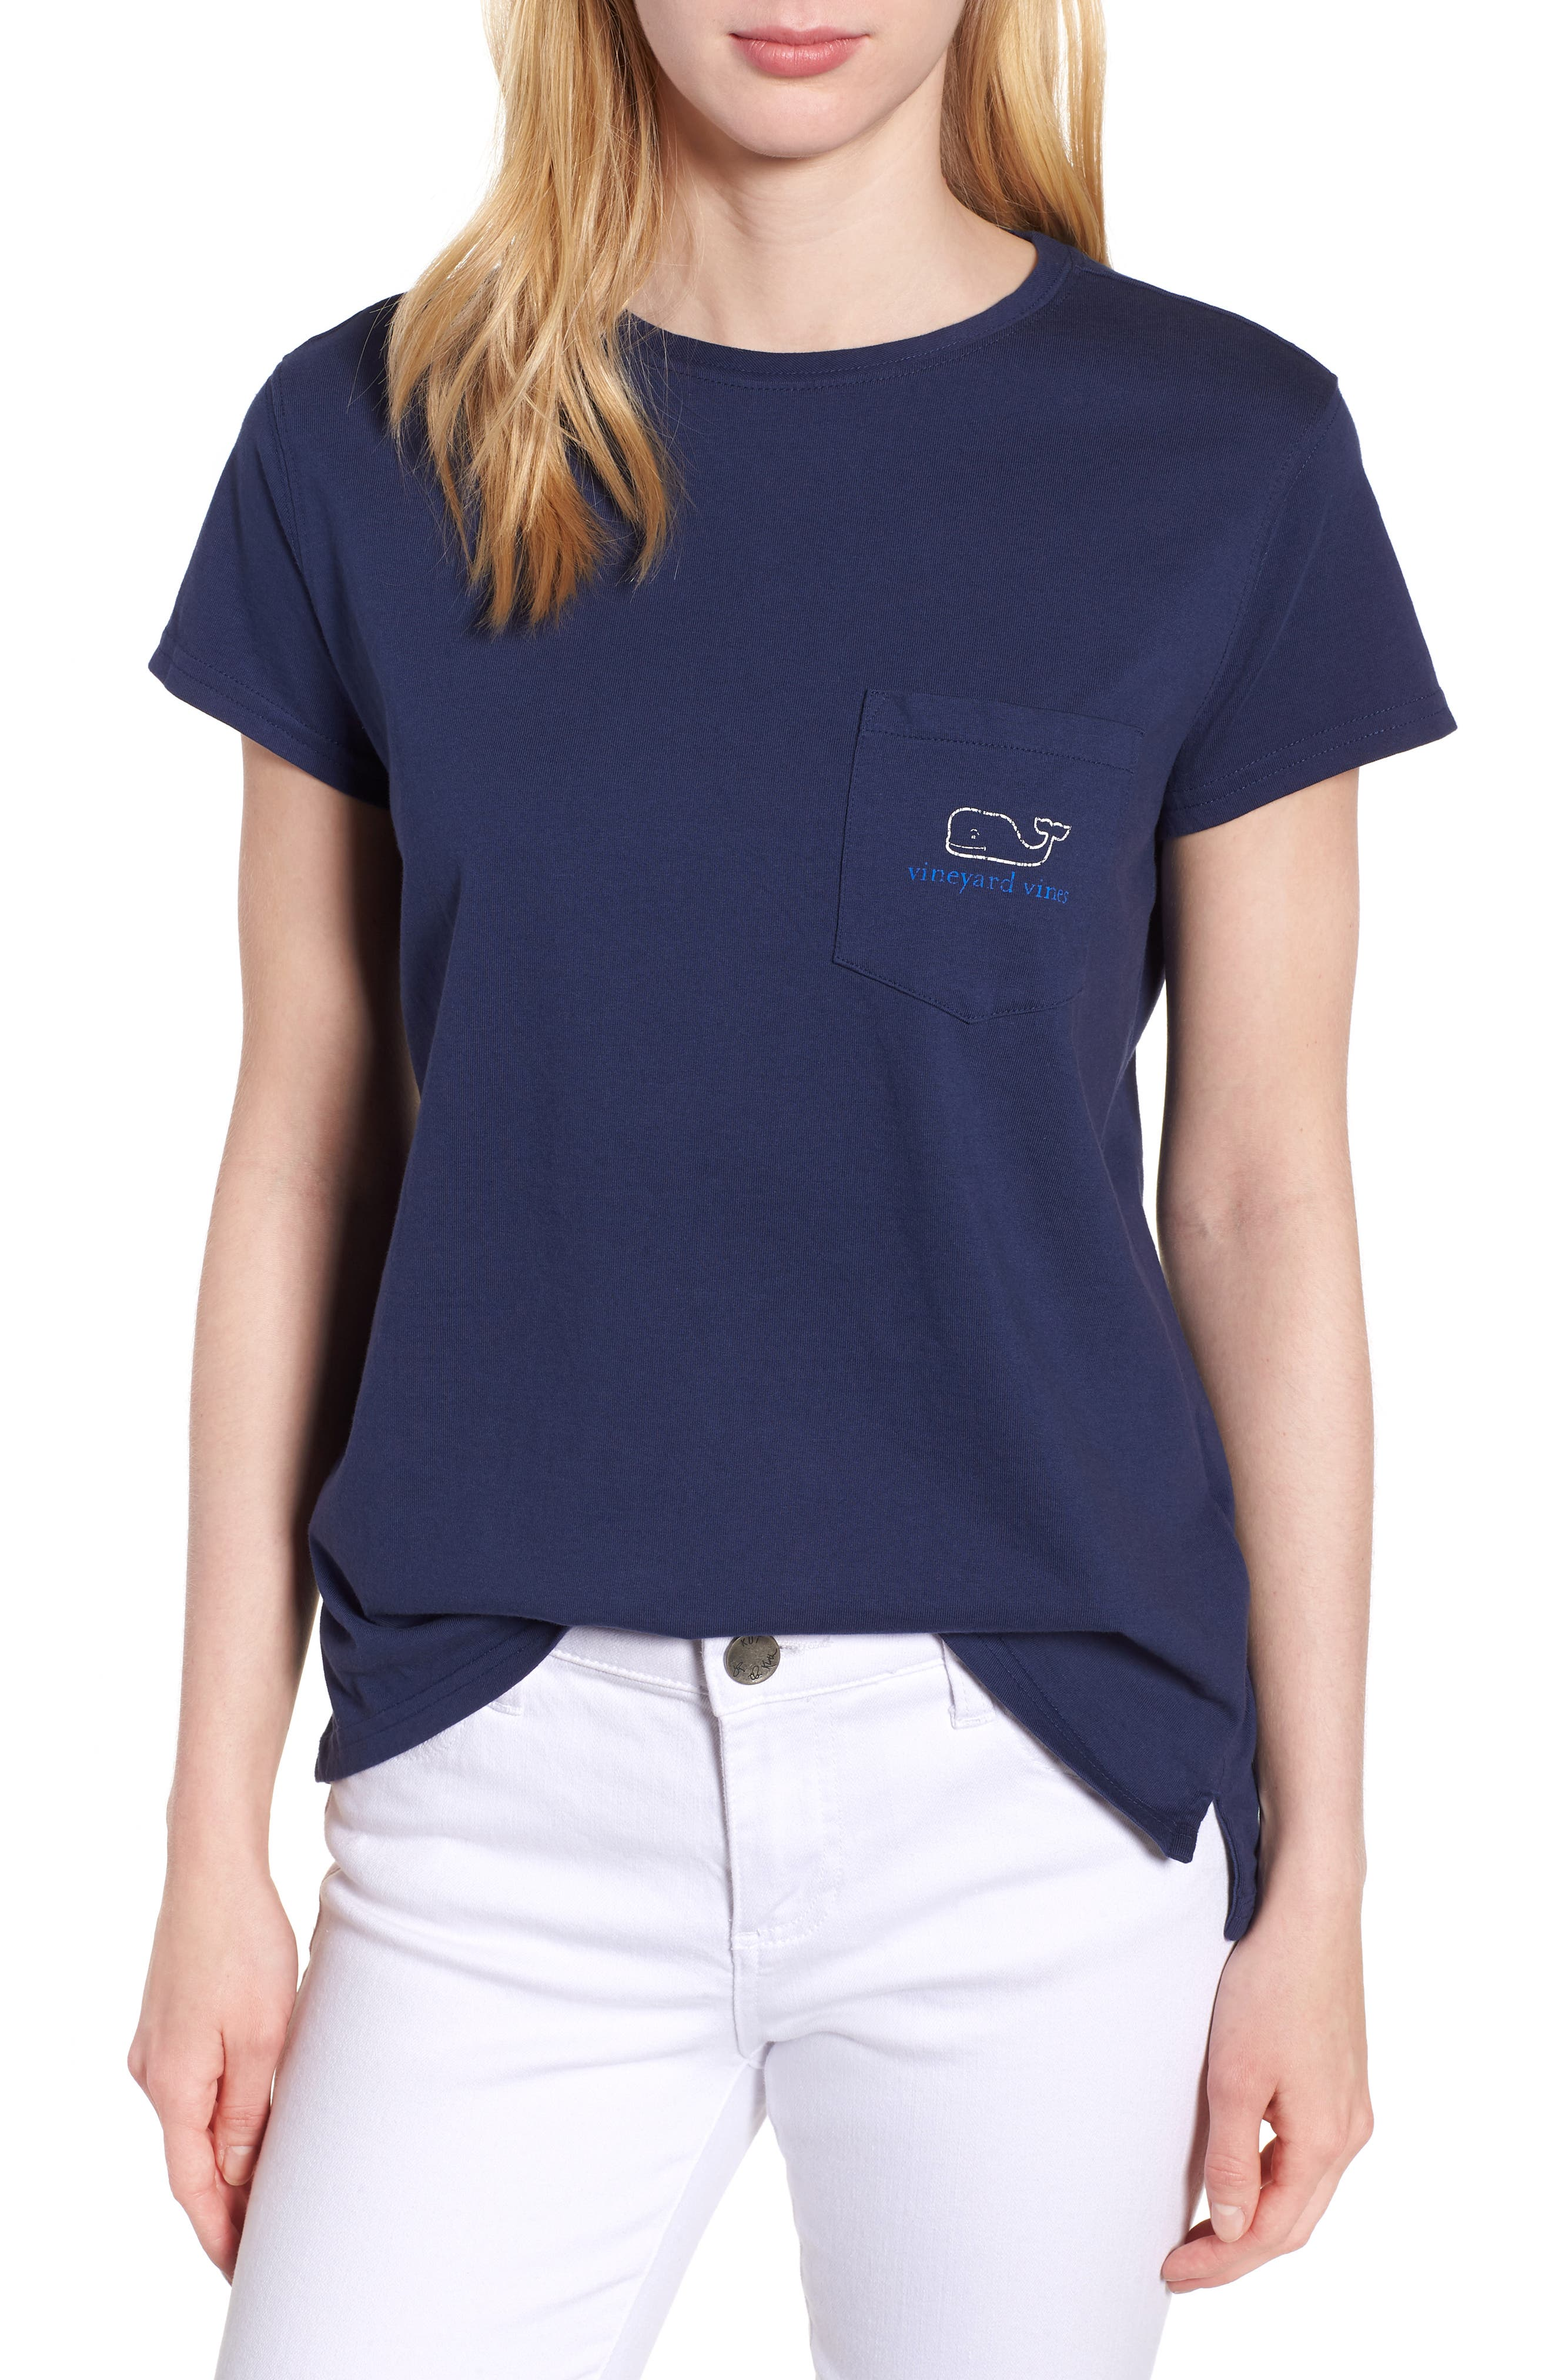 Main Image - vineyard vines Vintage Whale Relaxed Pocket Tee